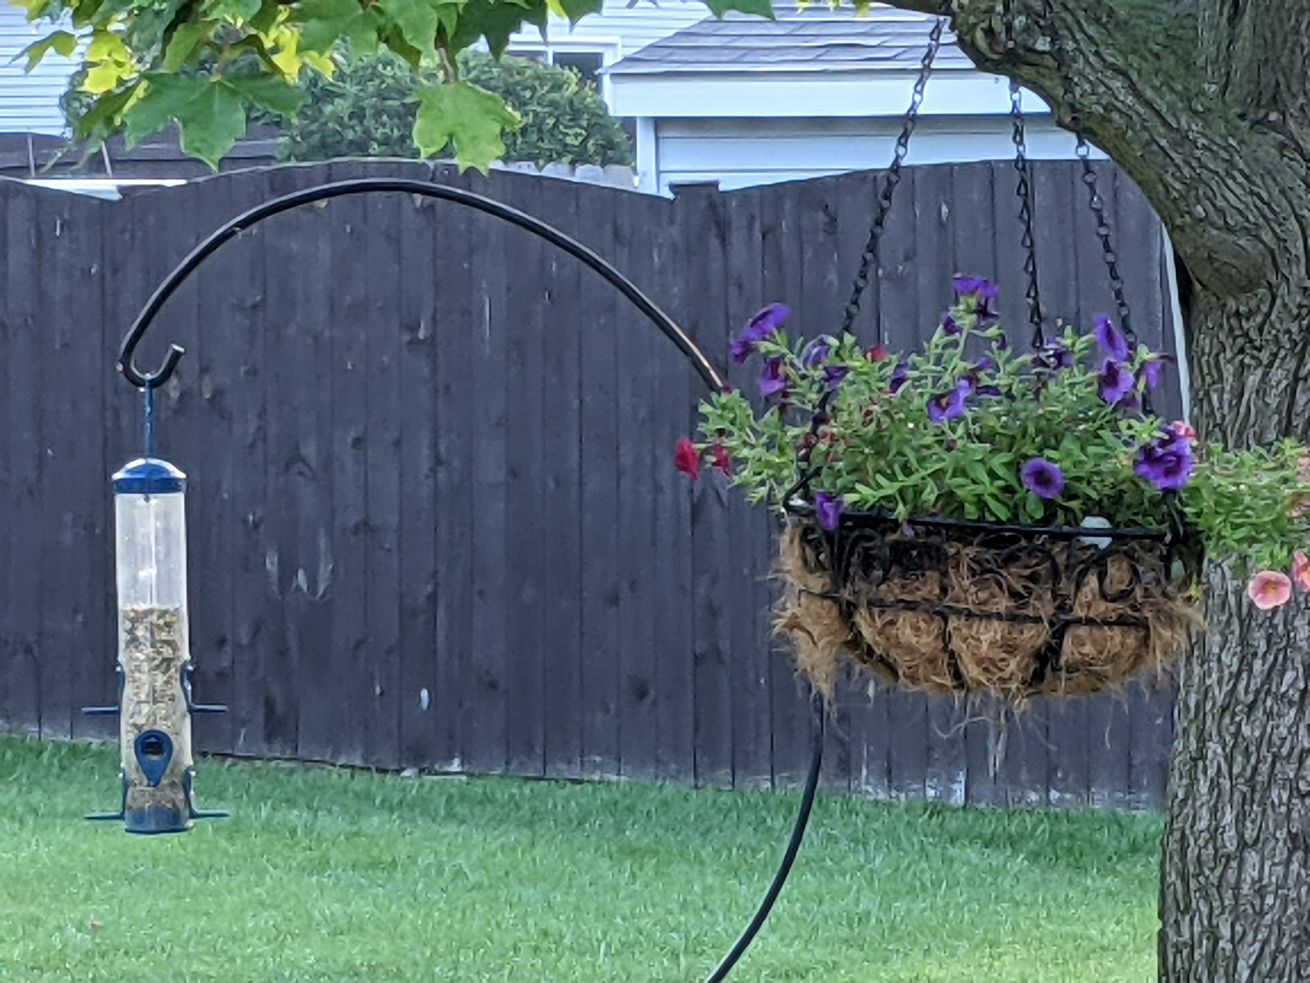 A still life of a bird feeder and a hanging basket. Credit: Dale Bowman